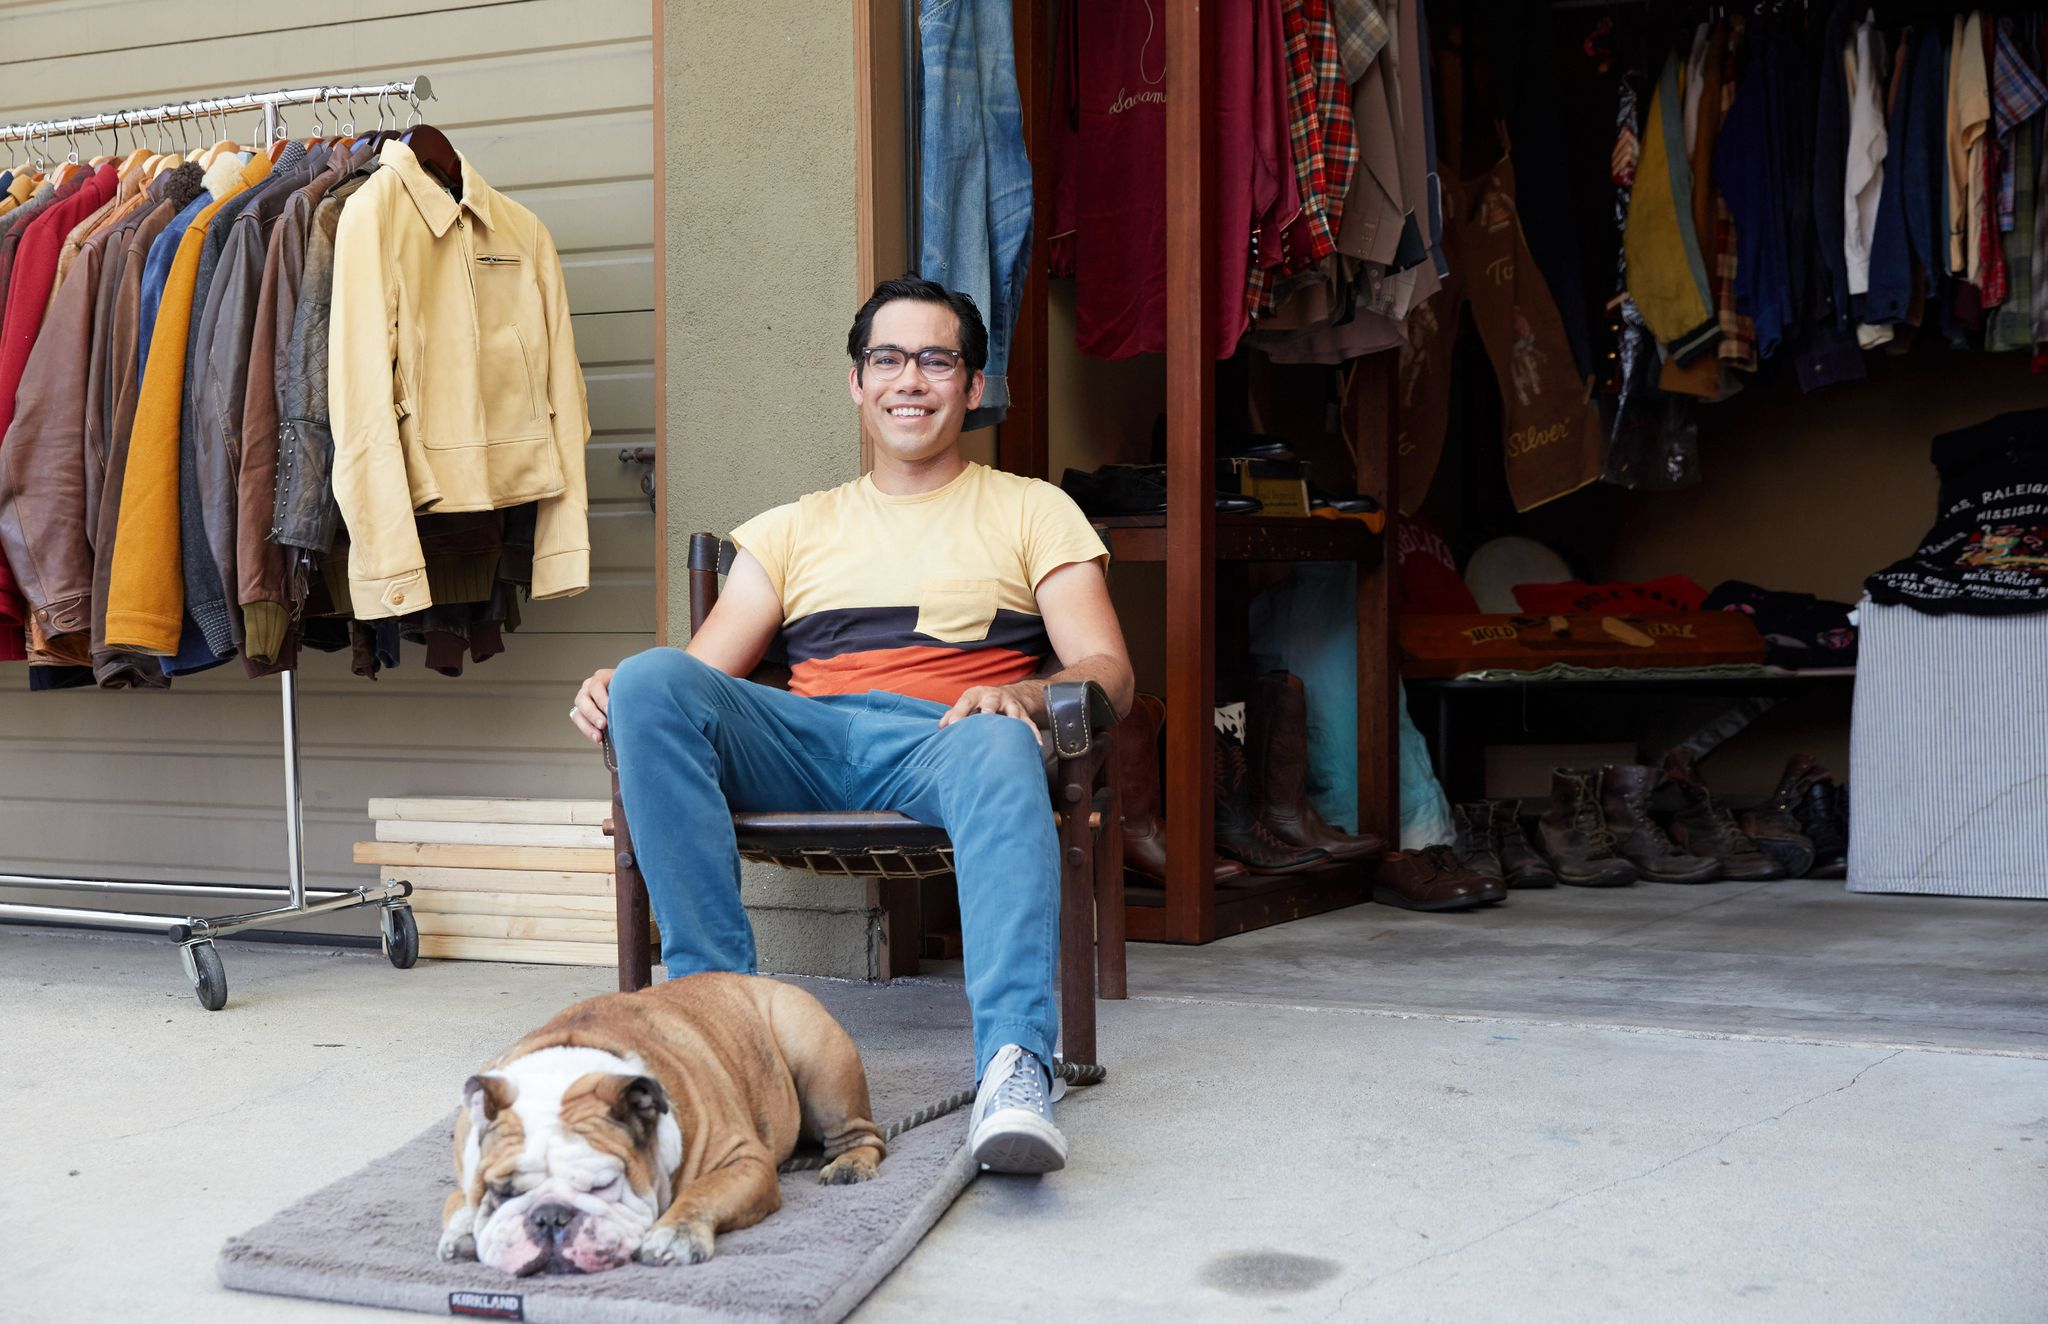 phong cach vintage - Tommy Abbott (above), owner of Tommy's Good Stuff. - elle man